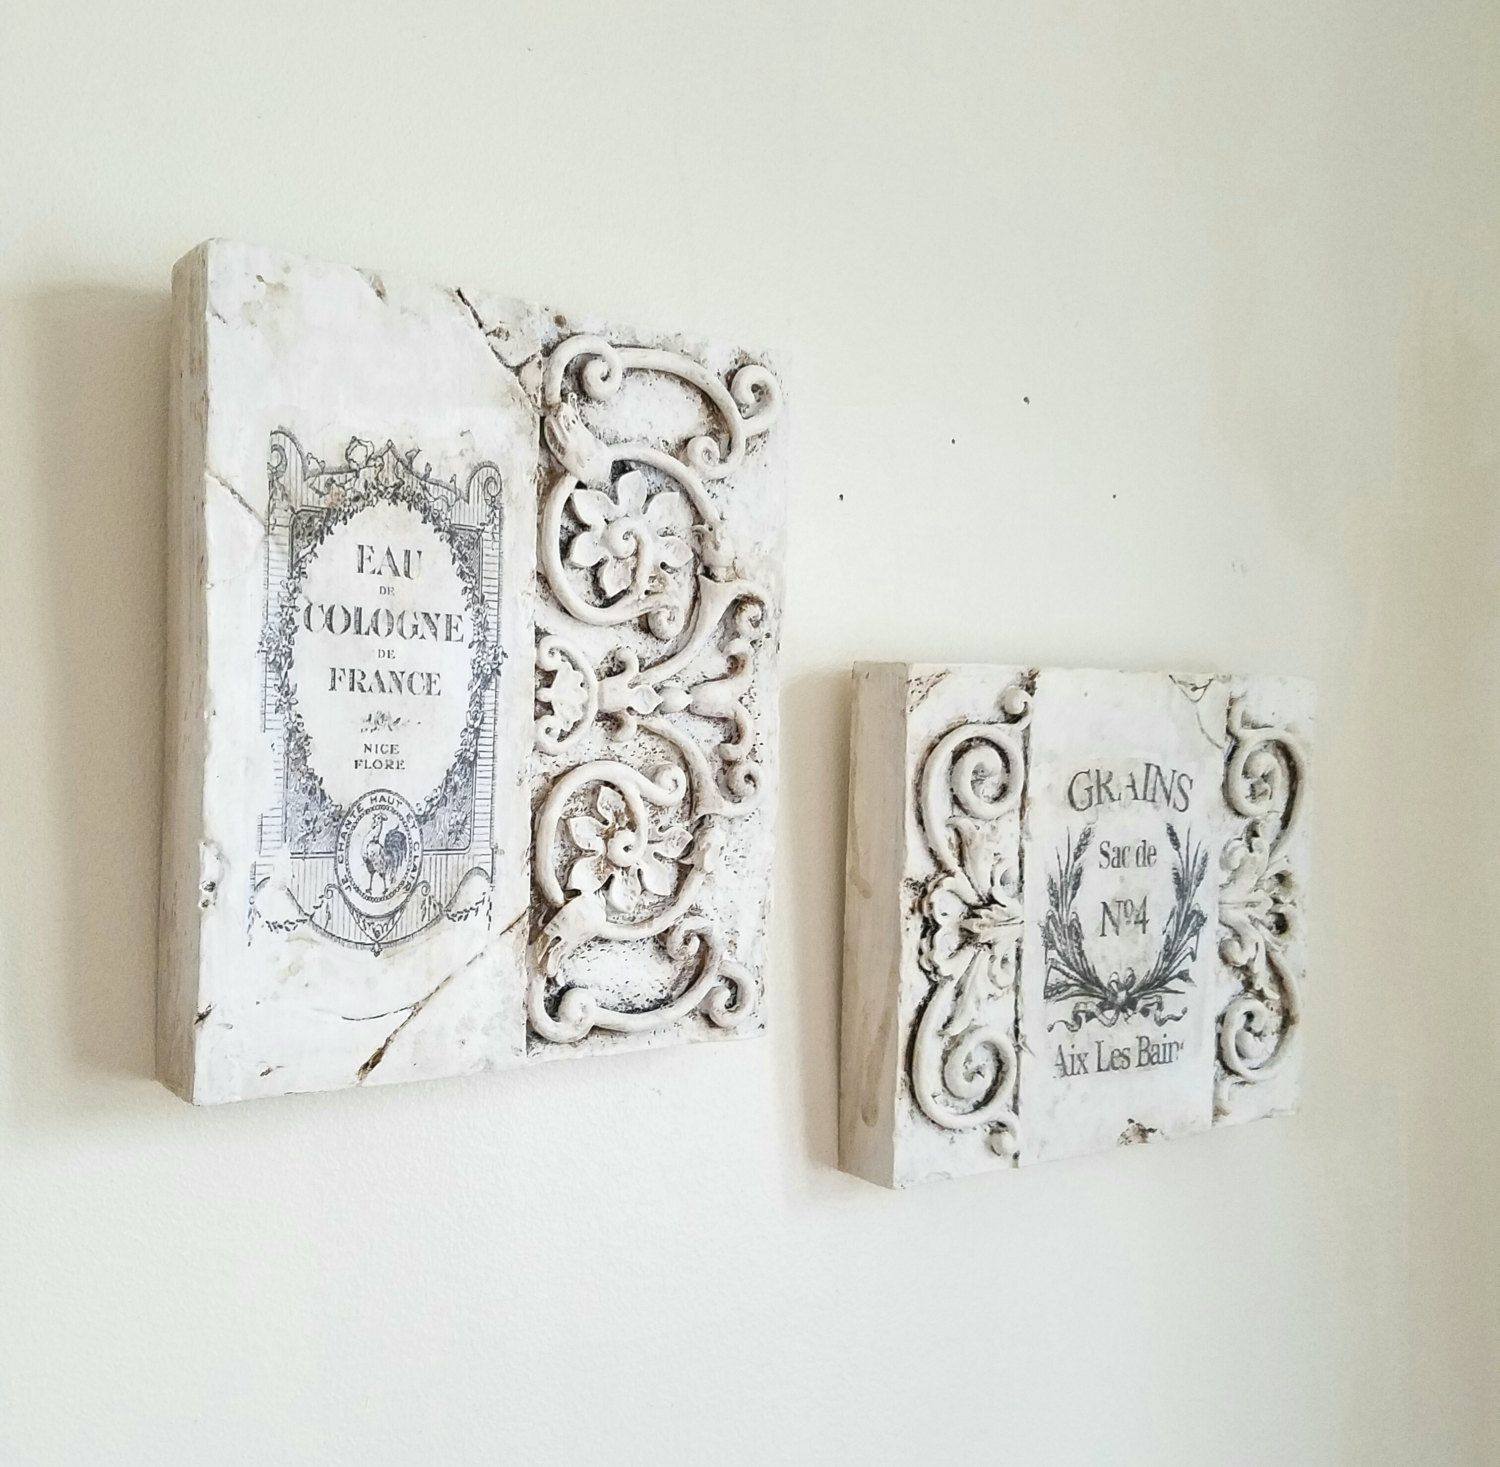 French Wall Decor Wall Plaque Wall Hanging Paris Decor White Distressed Hand Painted Set Of Two Wall Plaques Paris Decor Wall Decor